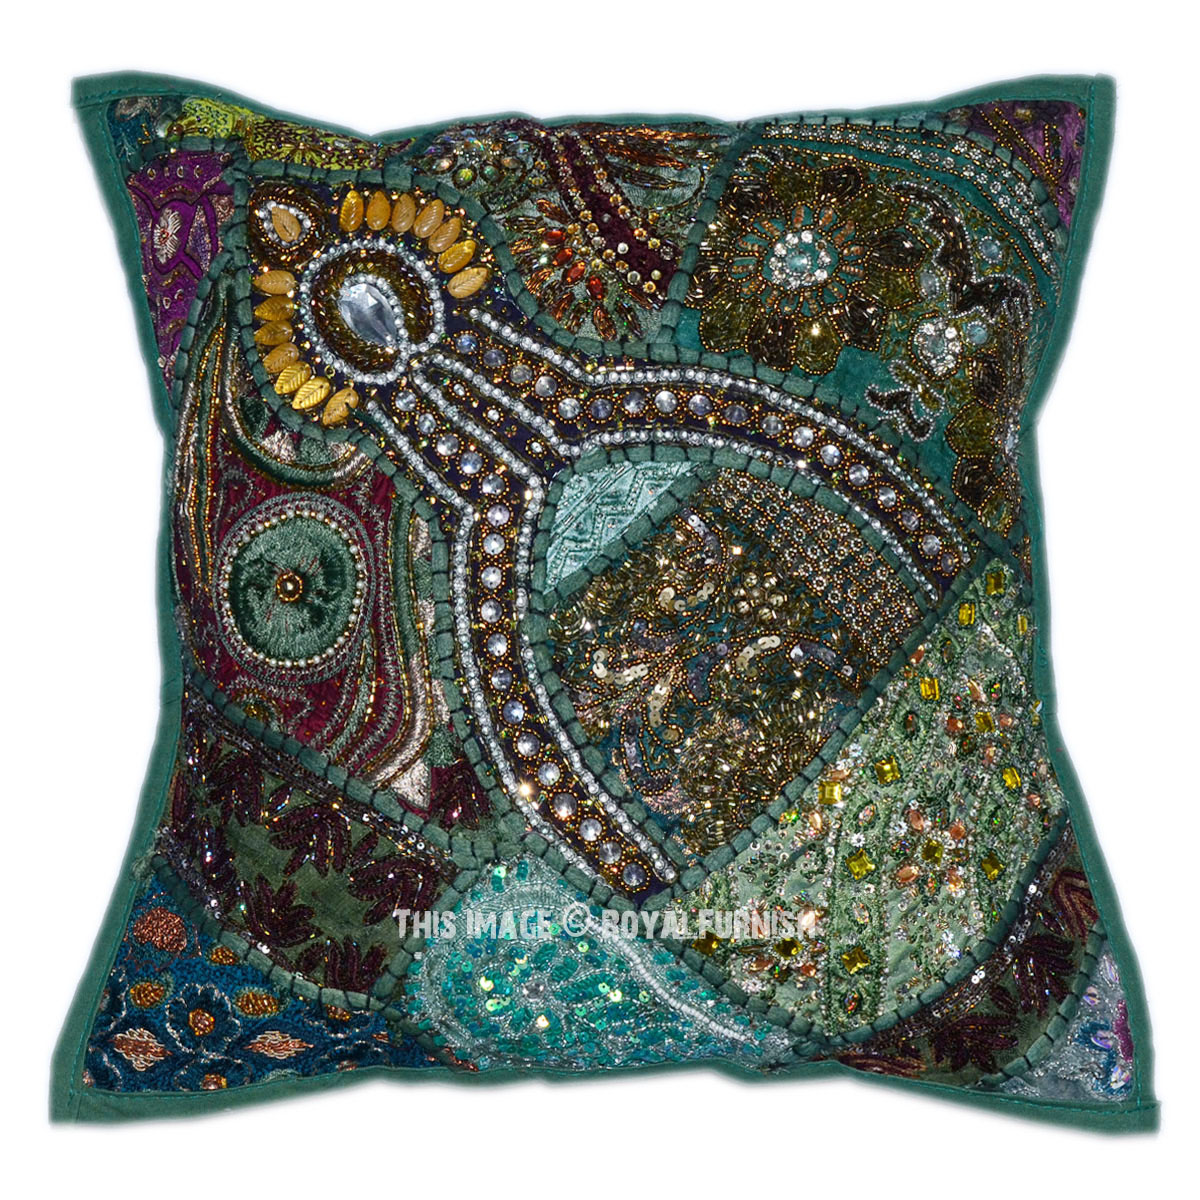 Decorative Pillows With Beads : 16